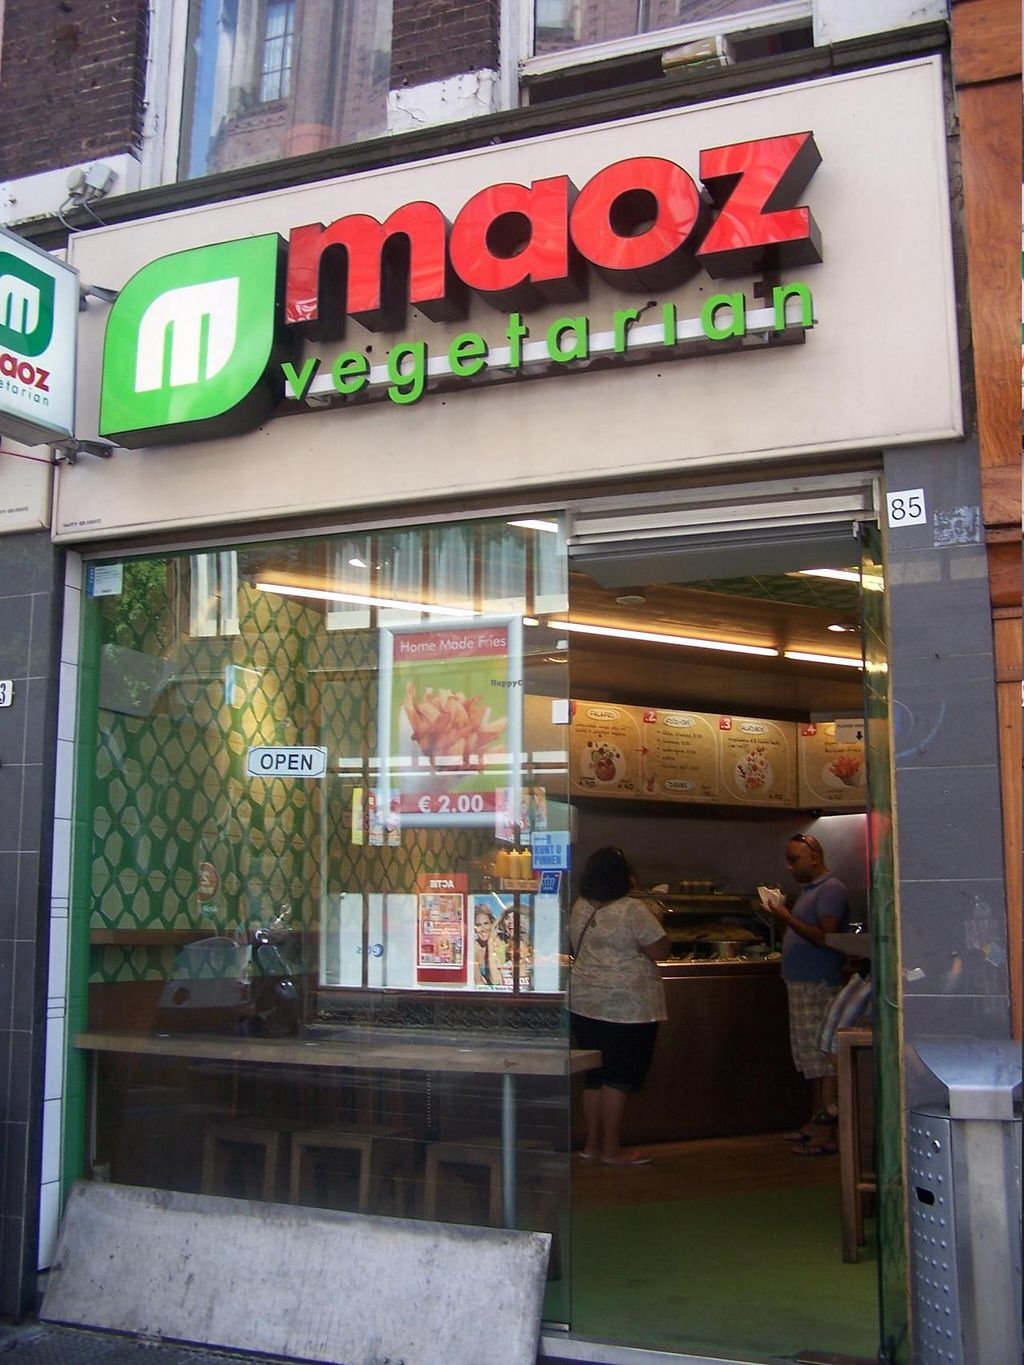 """Photo of Maoz Falafel - Leidsestraat  by <a href=""""/members/profile/Amy1274"""">Amy1274</a> <br/>Maoz Leidsestraat <br/> July 19, 2014  - <a href='/contact/abuse/image/3289/74407'>Report</a>"""